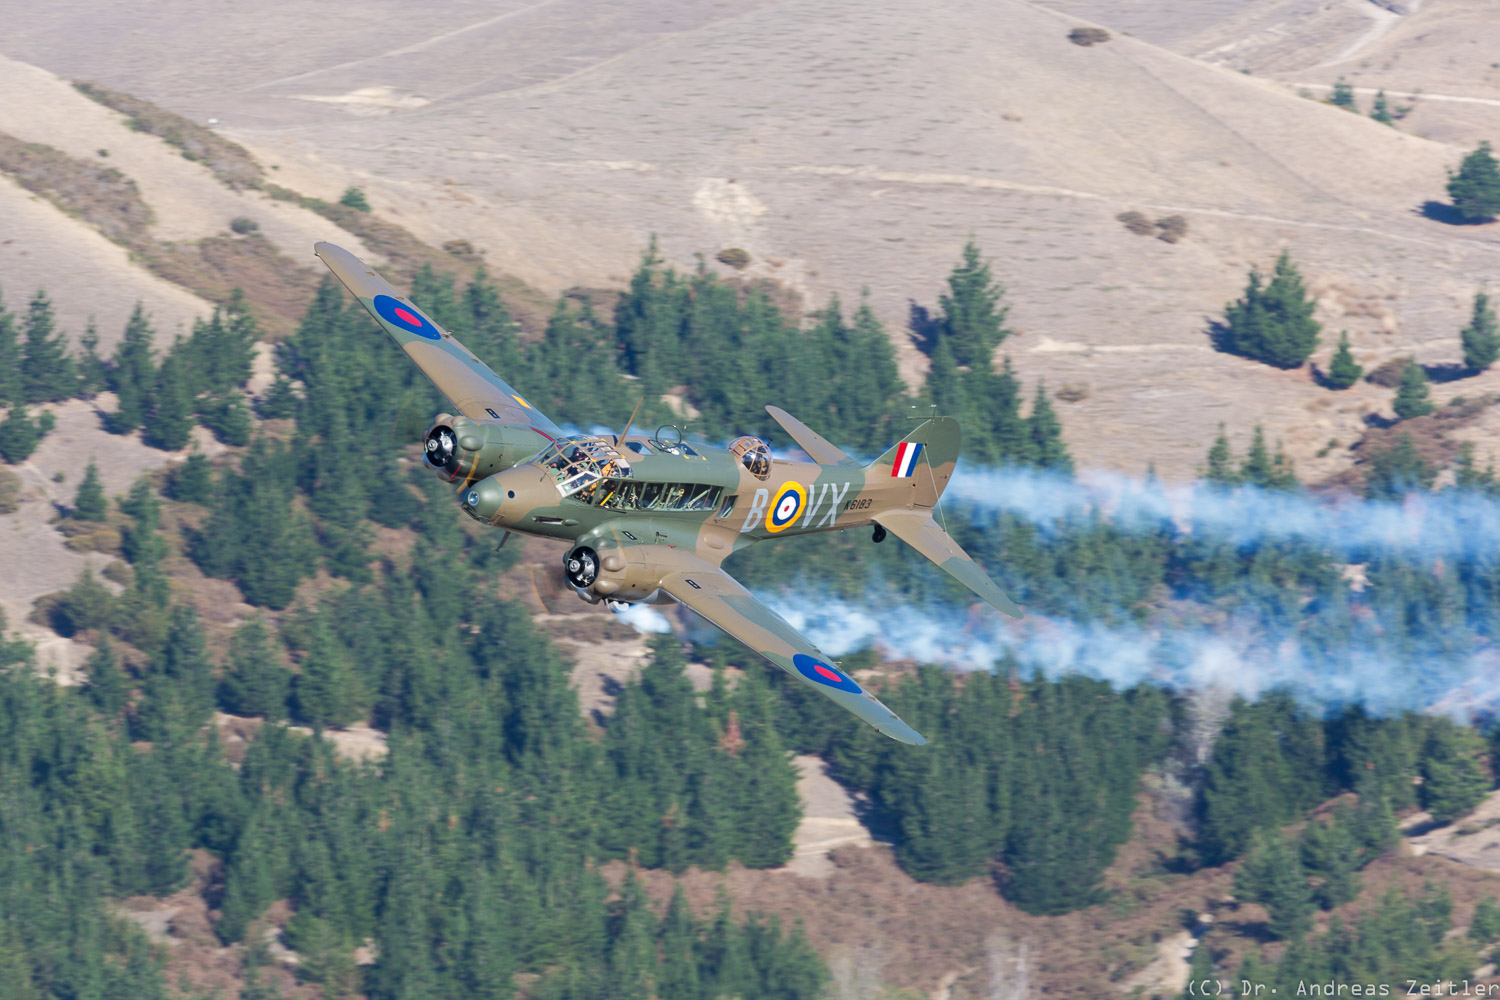 The Anson streaming fake smoke from its engines during its display. (photo by Anders Zeitler)